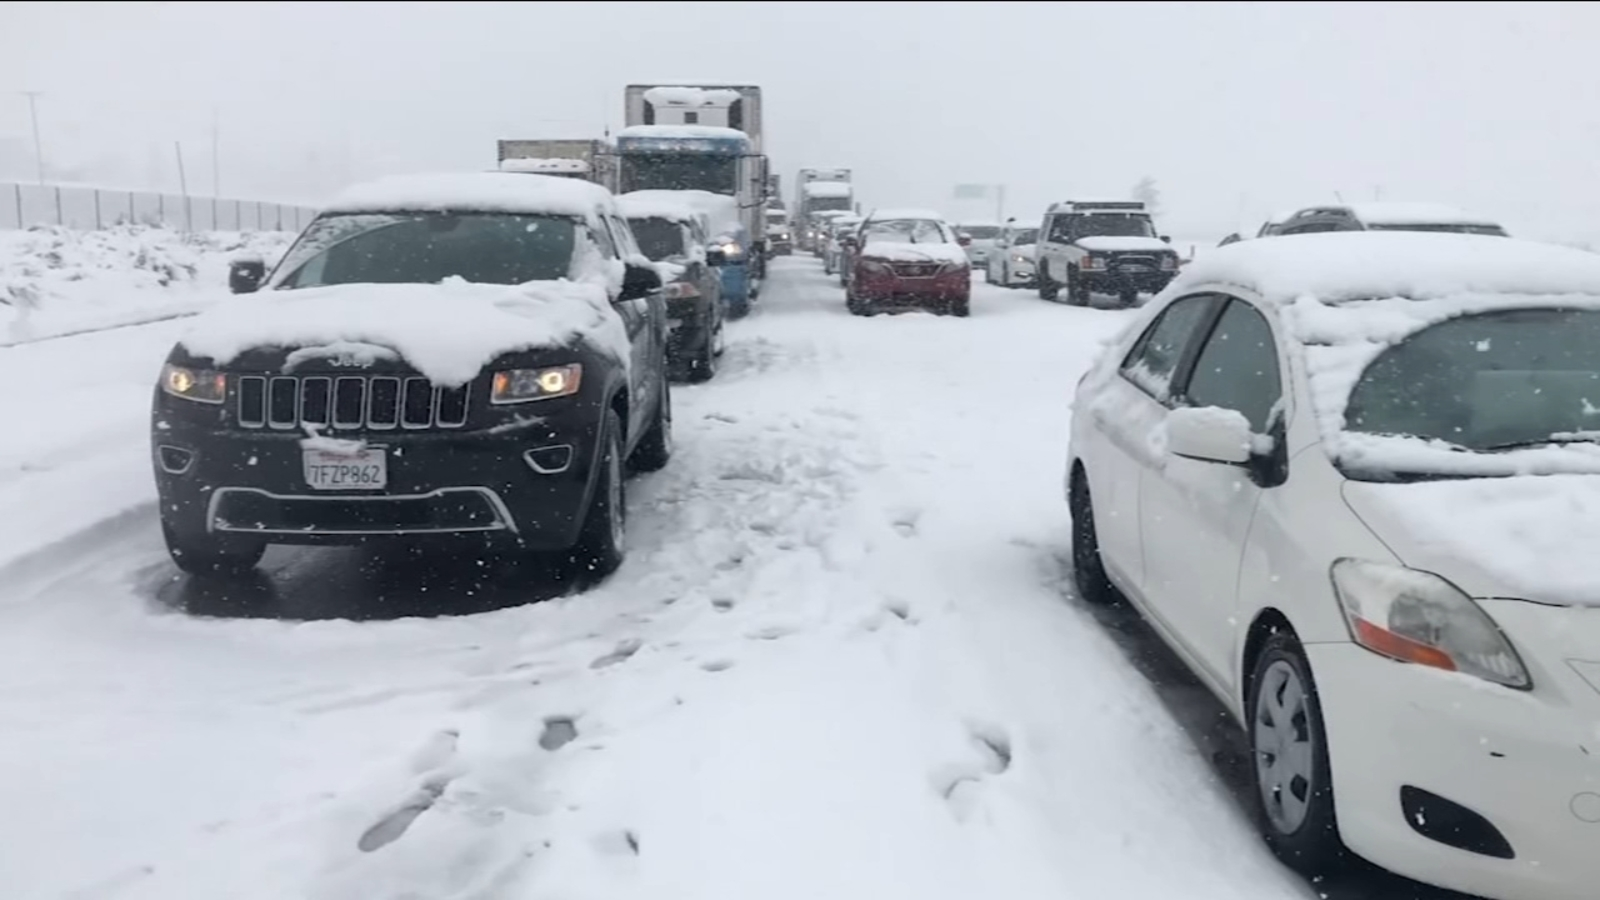 Both directions of I-5 over Grapevine reopen after snow halts traffic